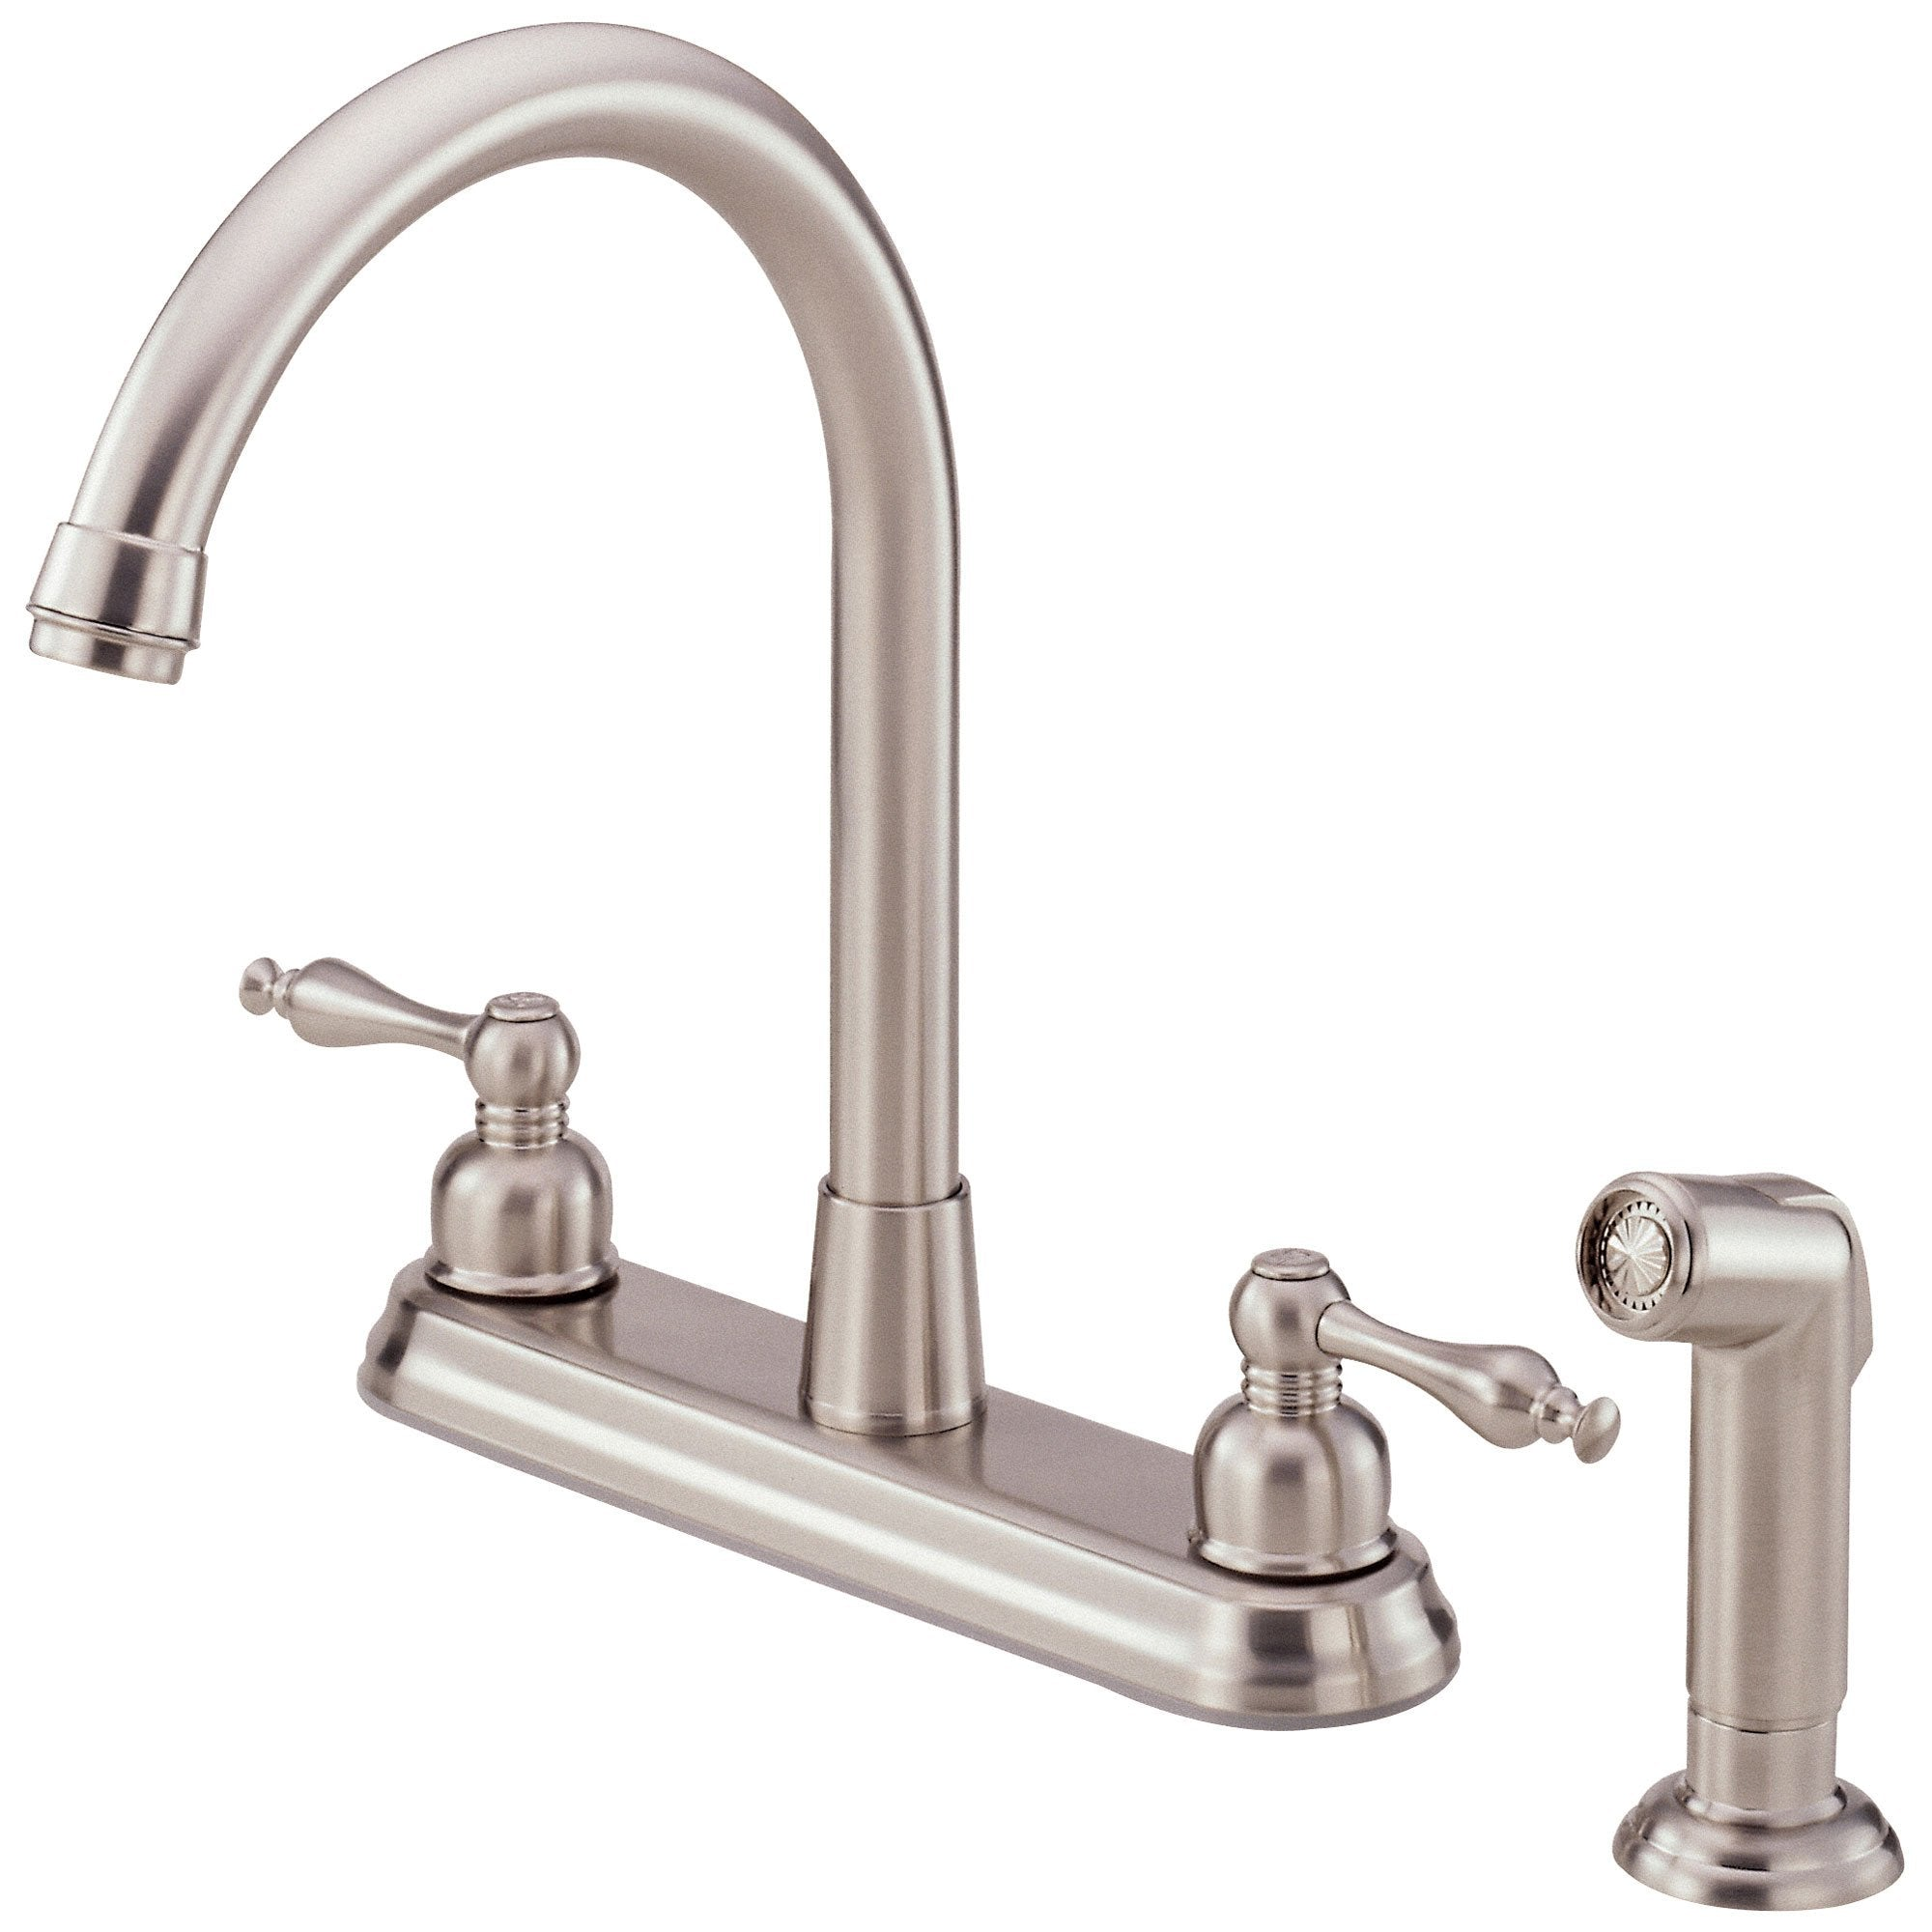 "Danze Sheridan Stainless Steel 2 Handle 8"" Centerset Kitchen Faucet with Sprayer"